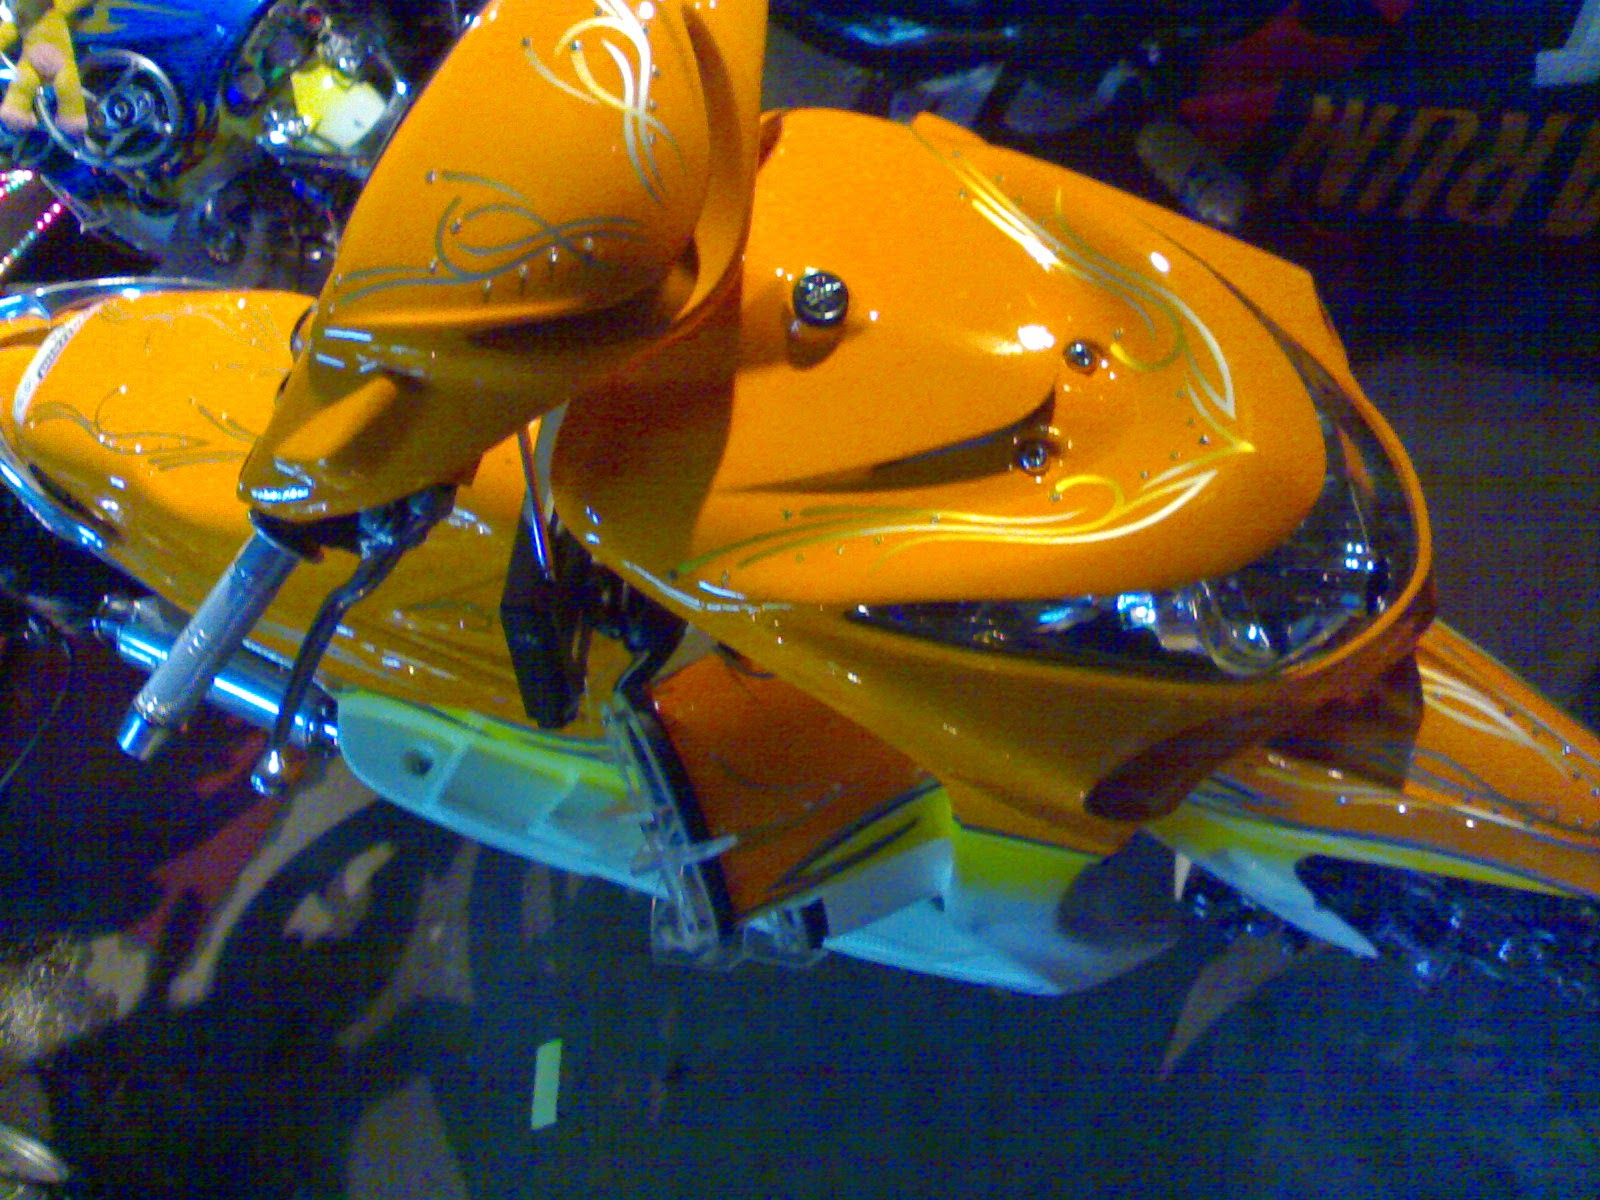 Mio J Modifikasi Airbrush